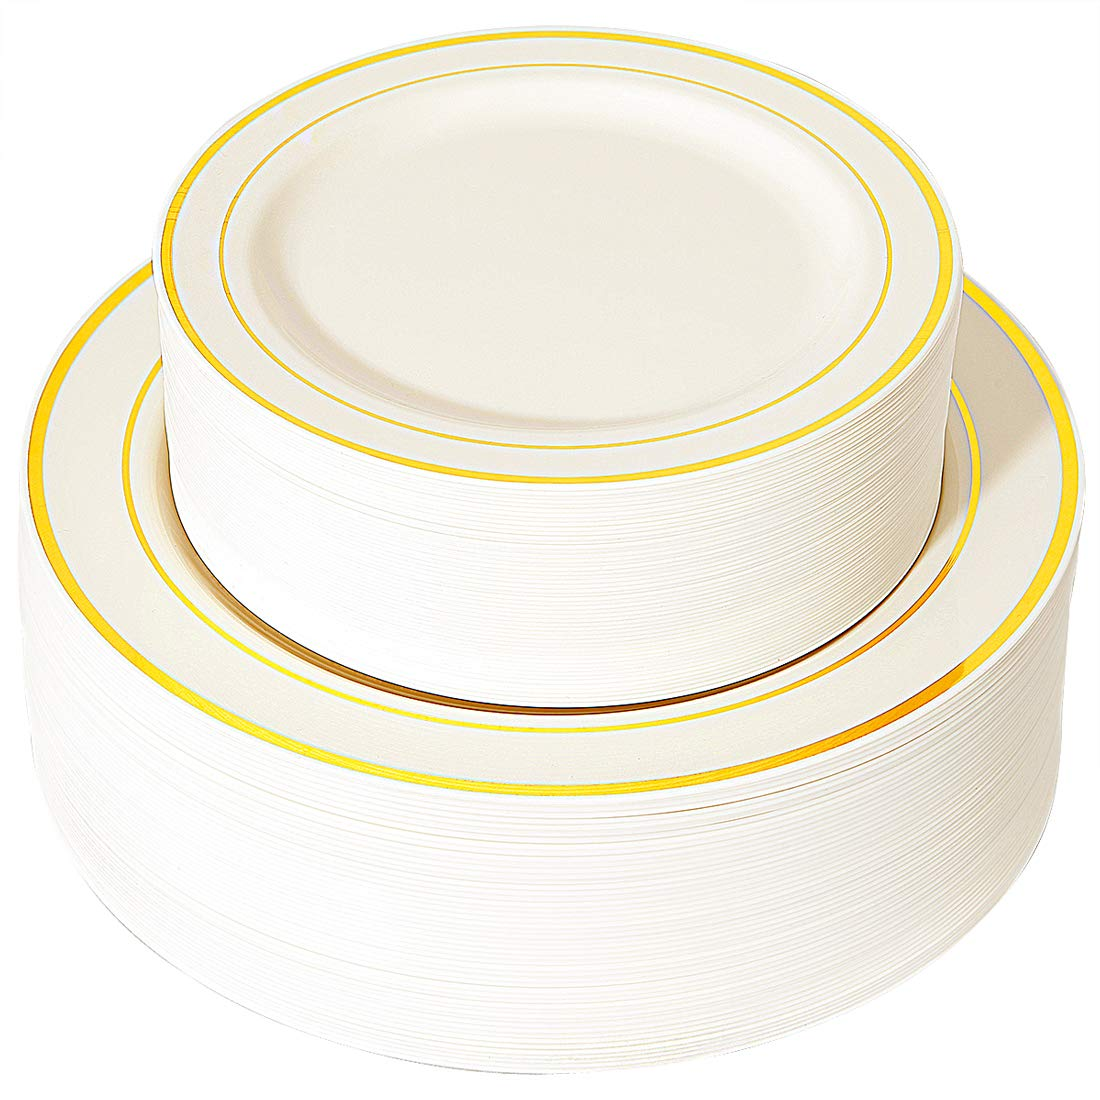 "WDF 102 pieces Gold Plastic Plates- Ivory with Gold Rim Disposable Party Wedding Plates,Premium Heavy Duty 51-10.25"" Dinner Plates and 51-7.5"" Salad Plates"